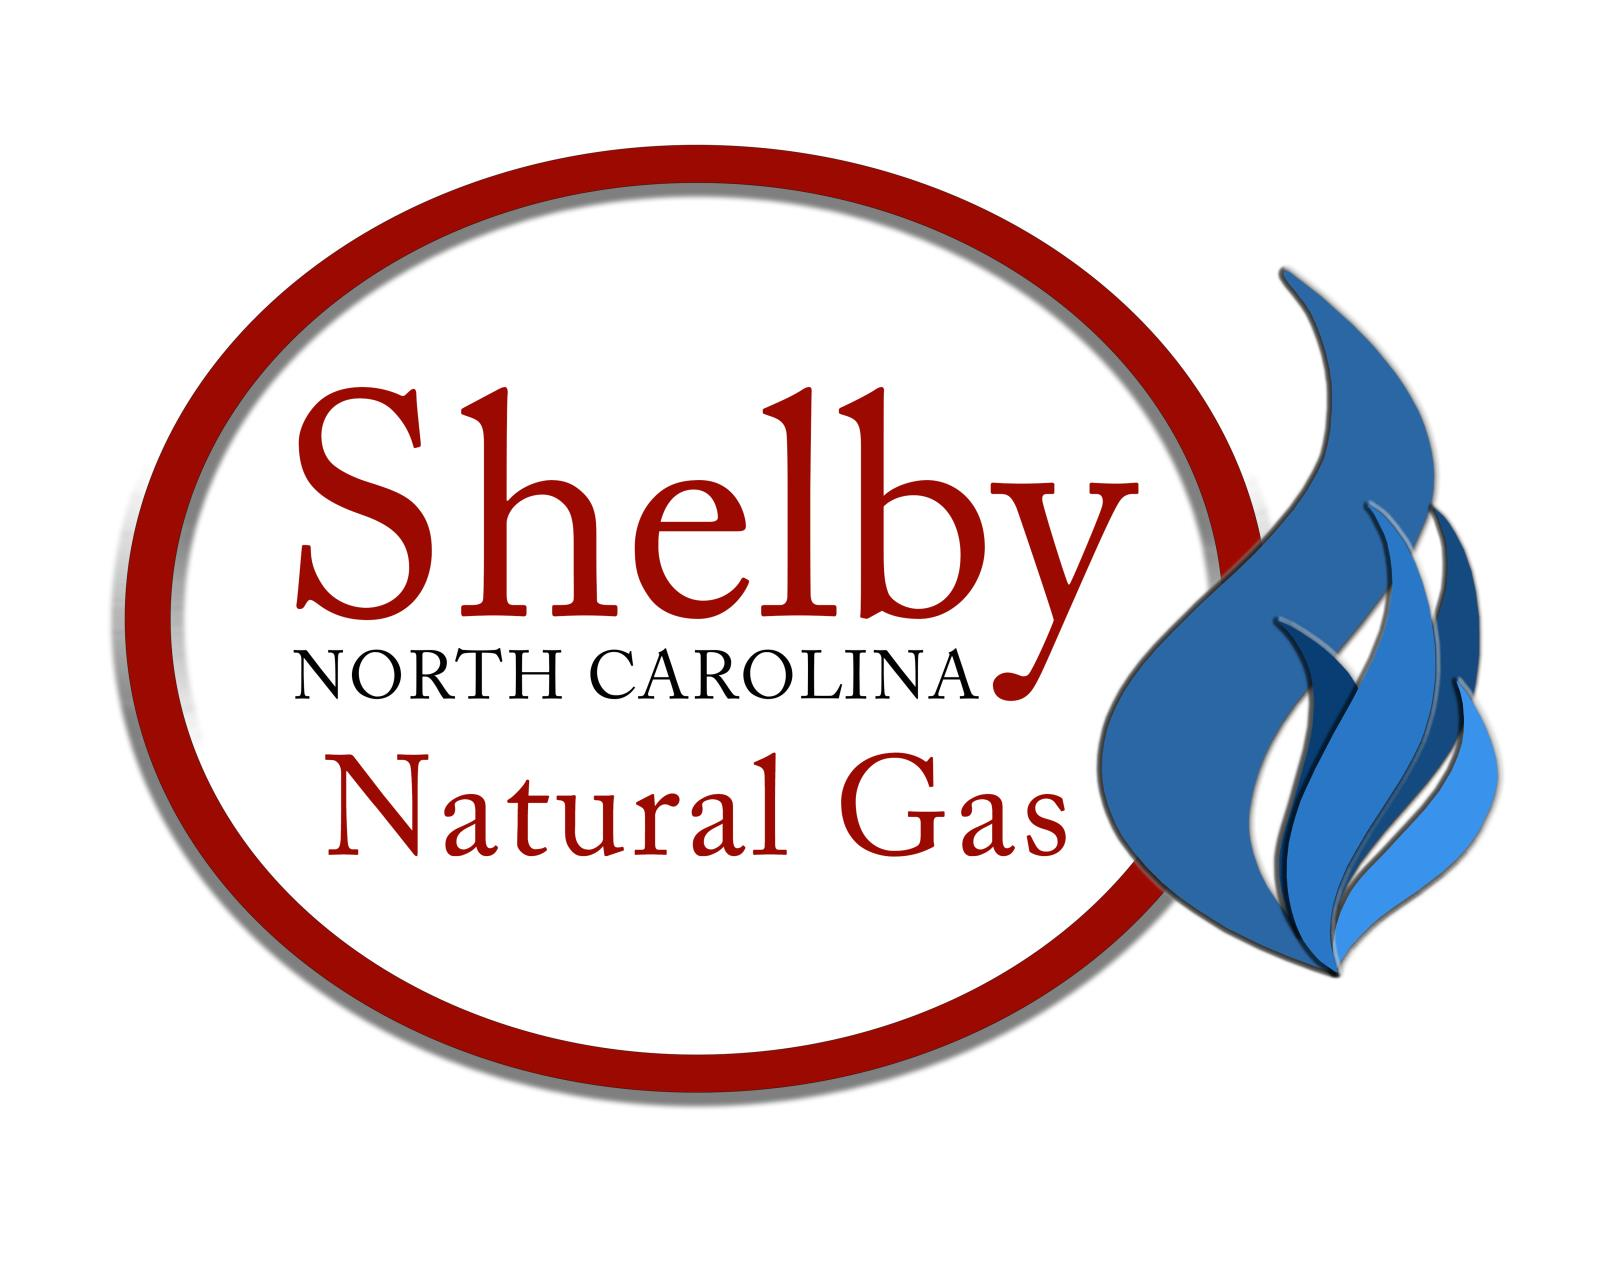 Natural Gas Logo (Transparent Background)